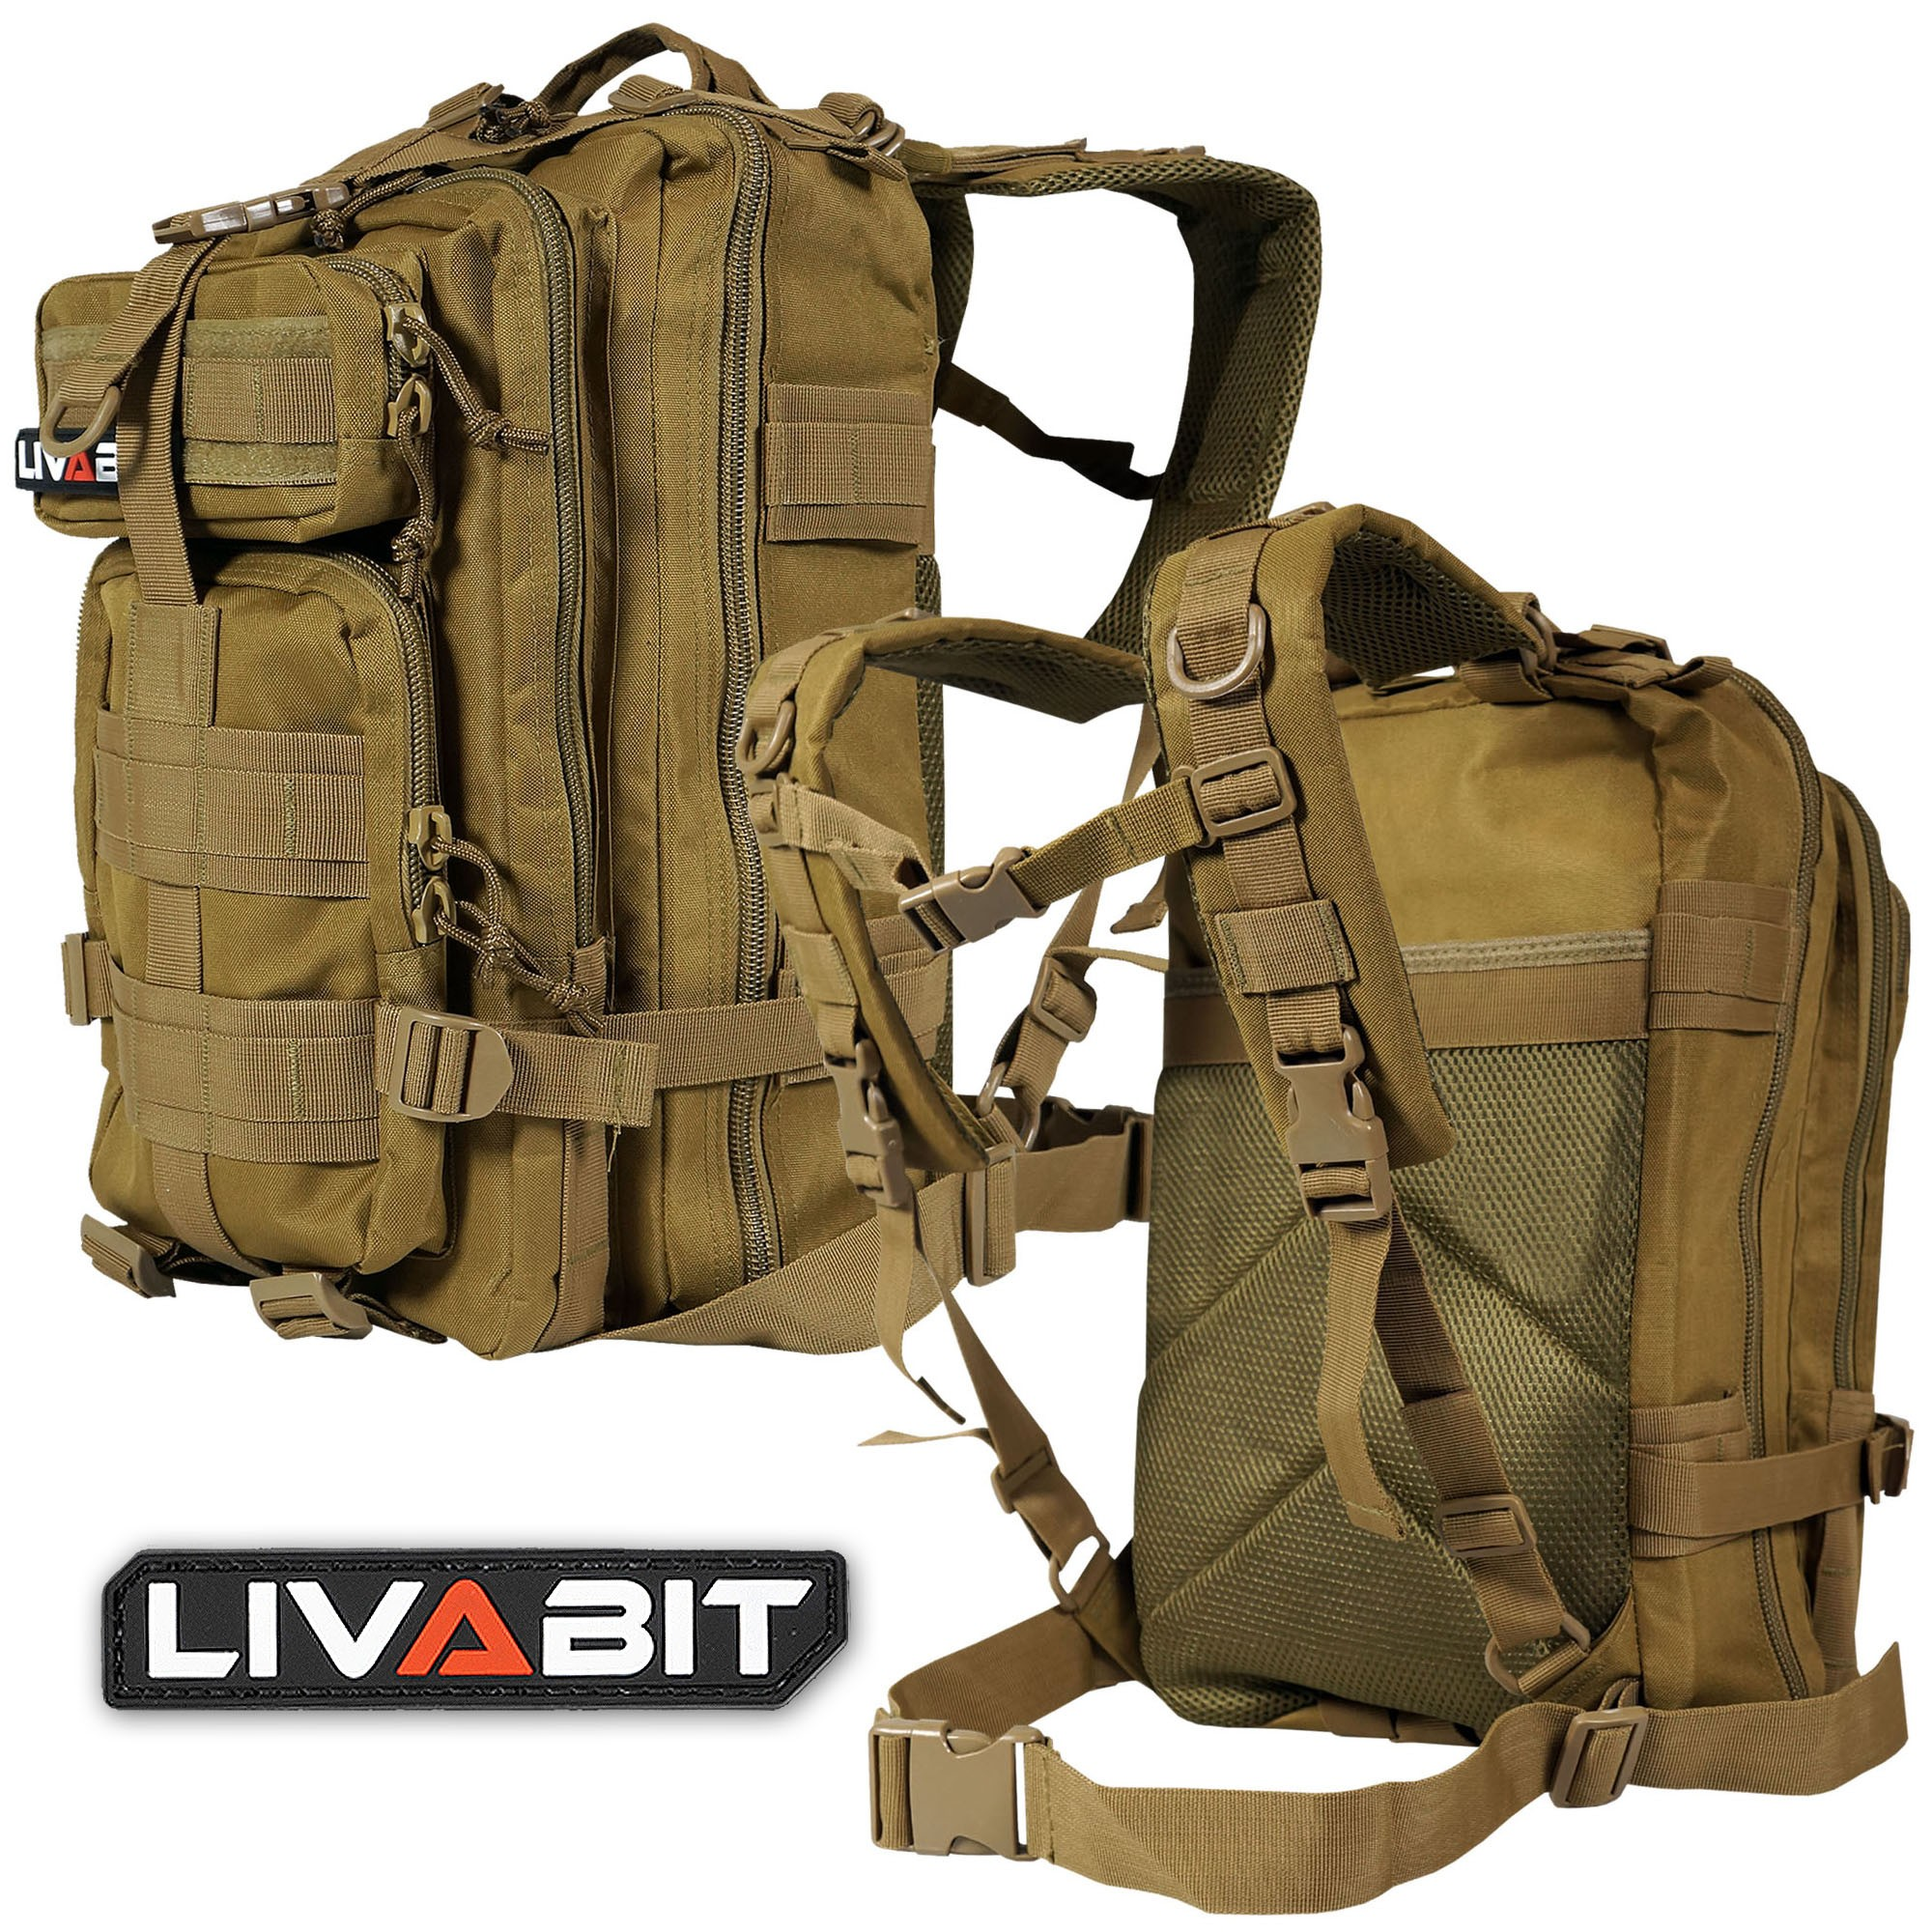 Bug Out Bag Backpack Rucksack Carrier Gallery Product Description Reviews Tags Liv A12 1 Tan